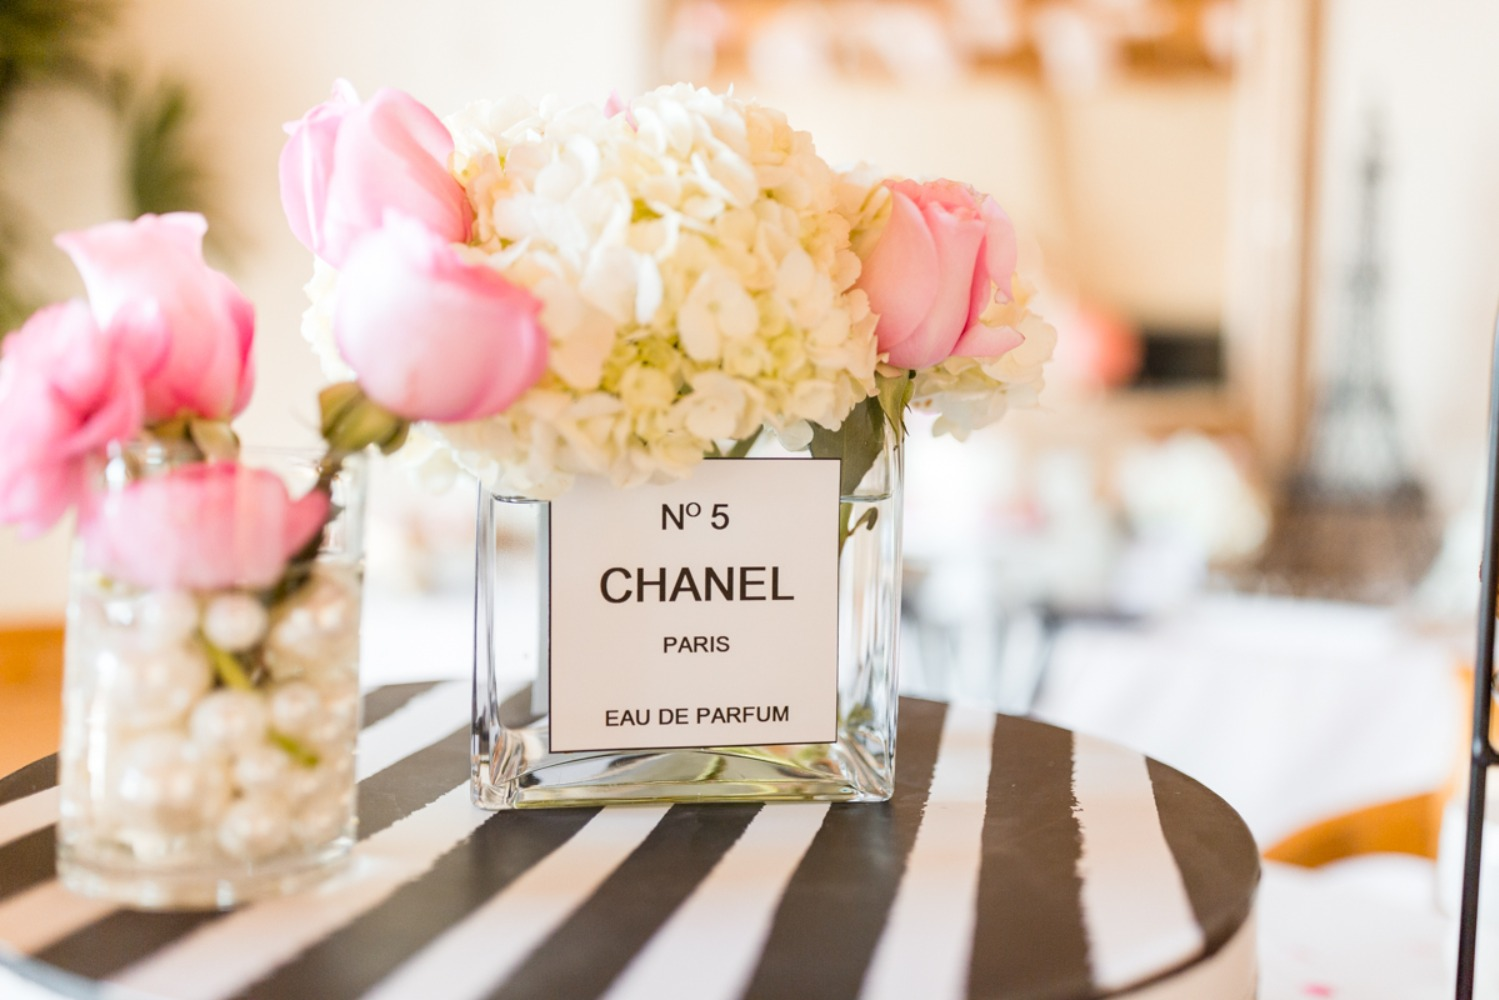 Chanel No 5 flower vase